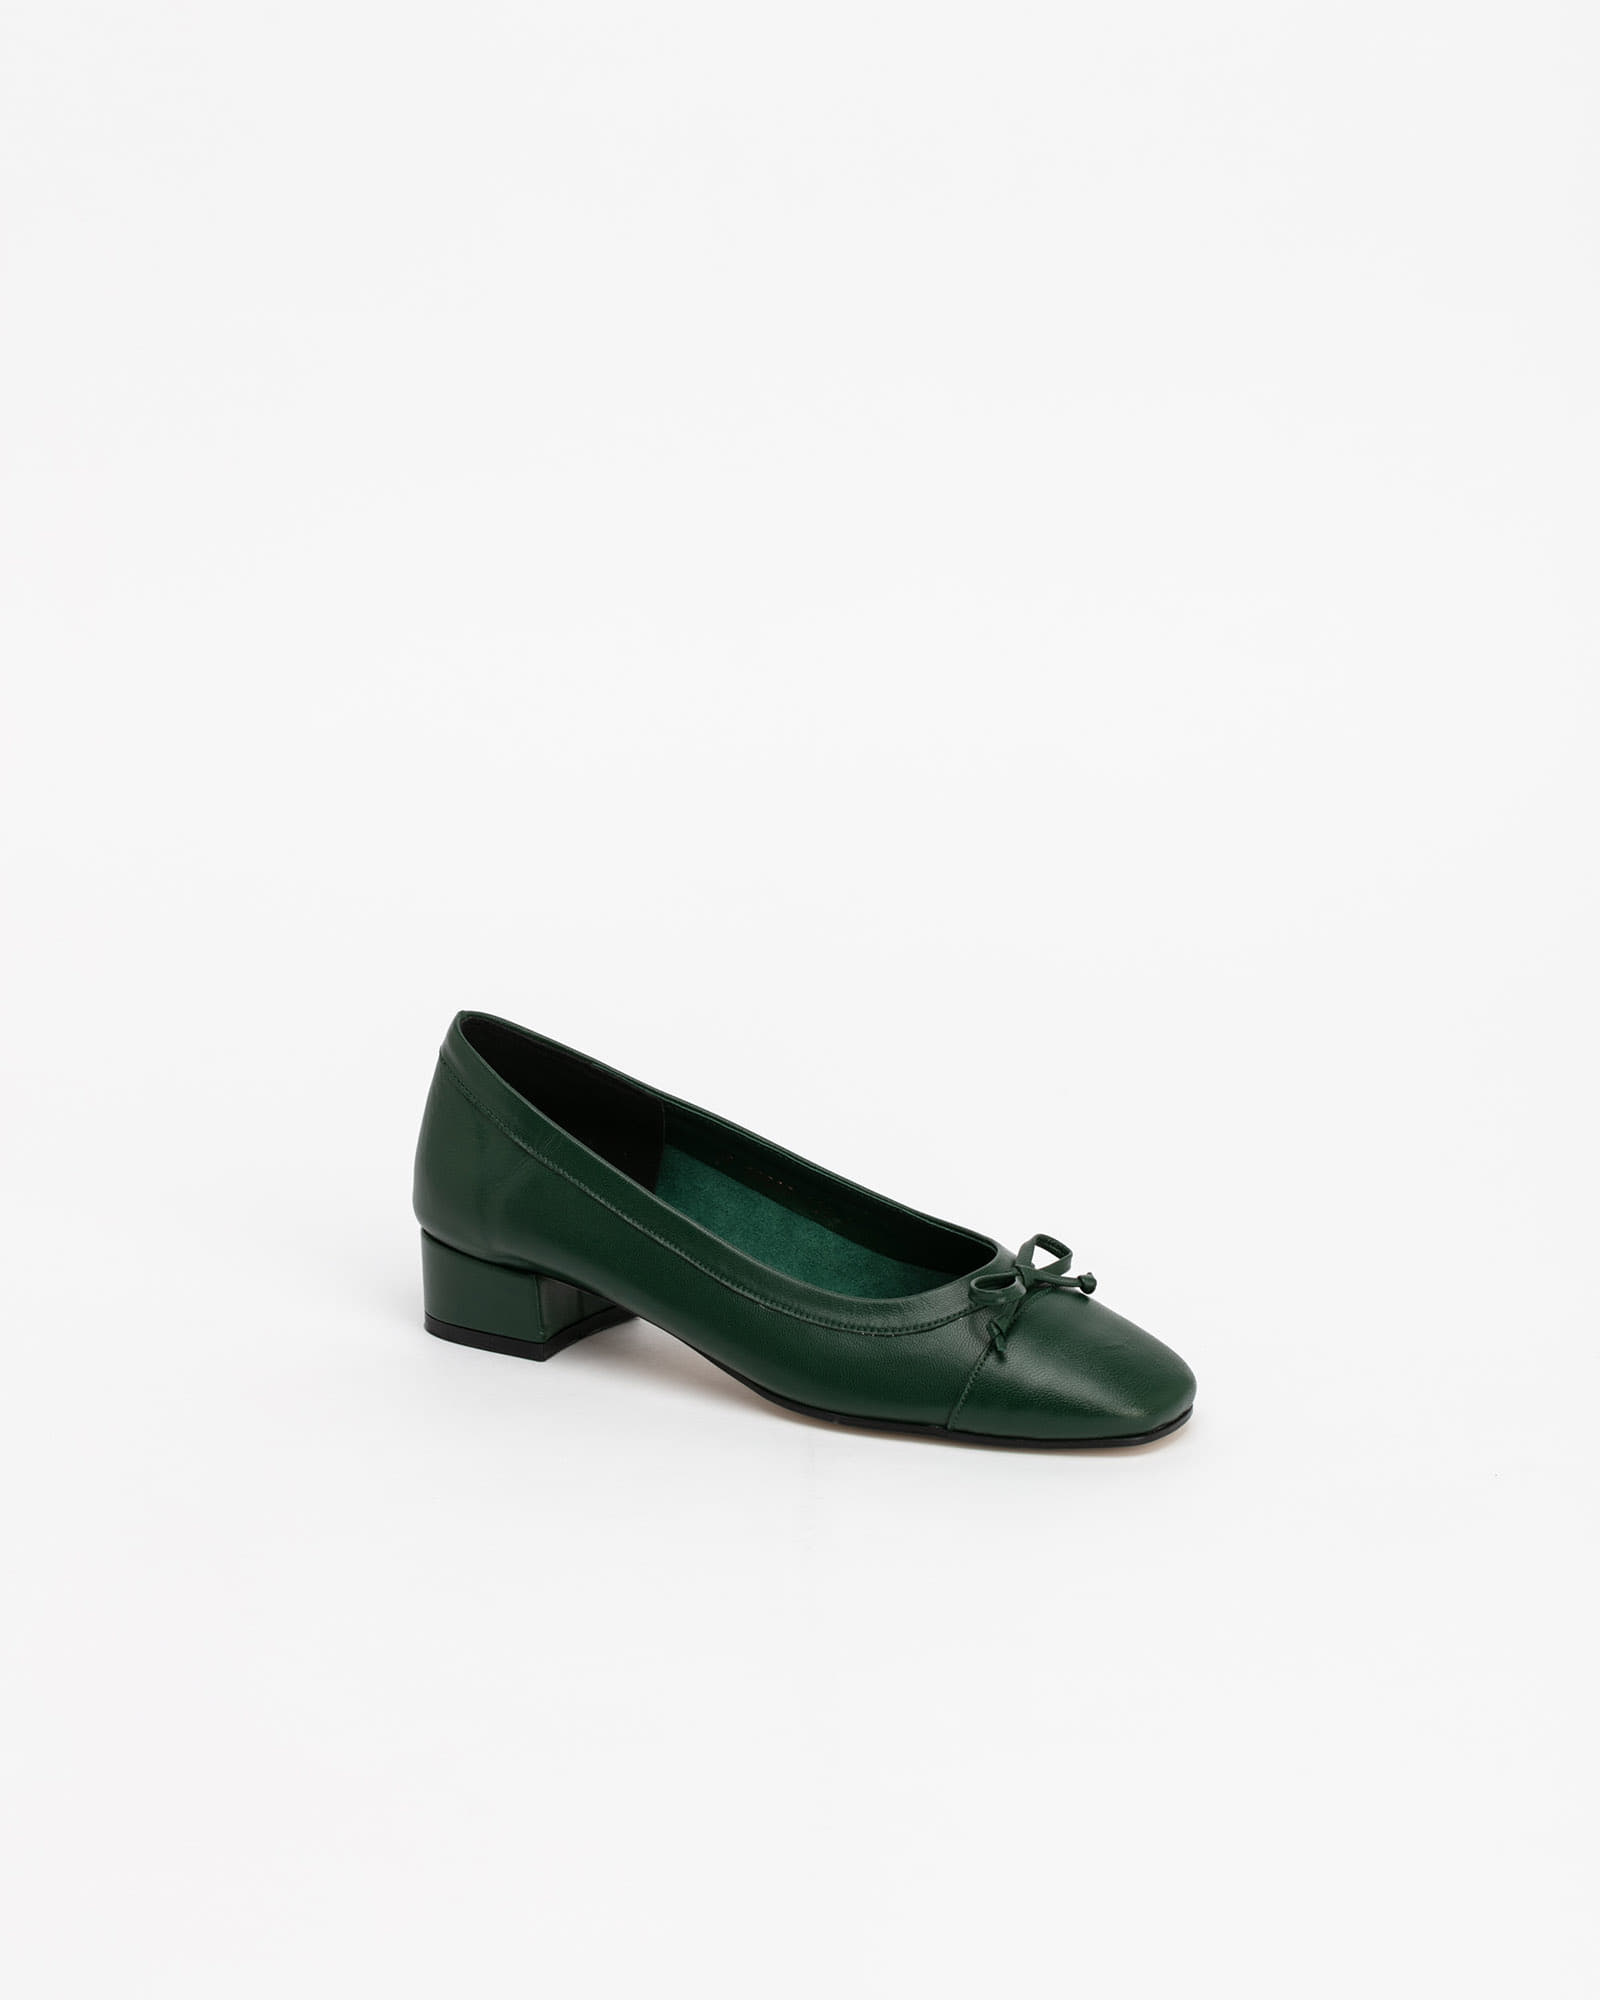 Alice Soft Ballerinas in Forest Green